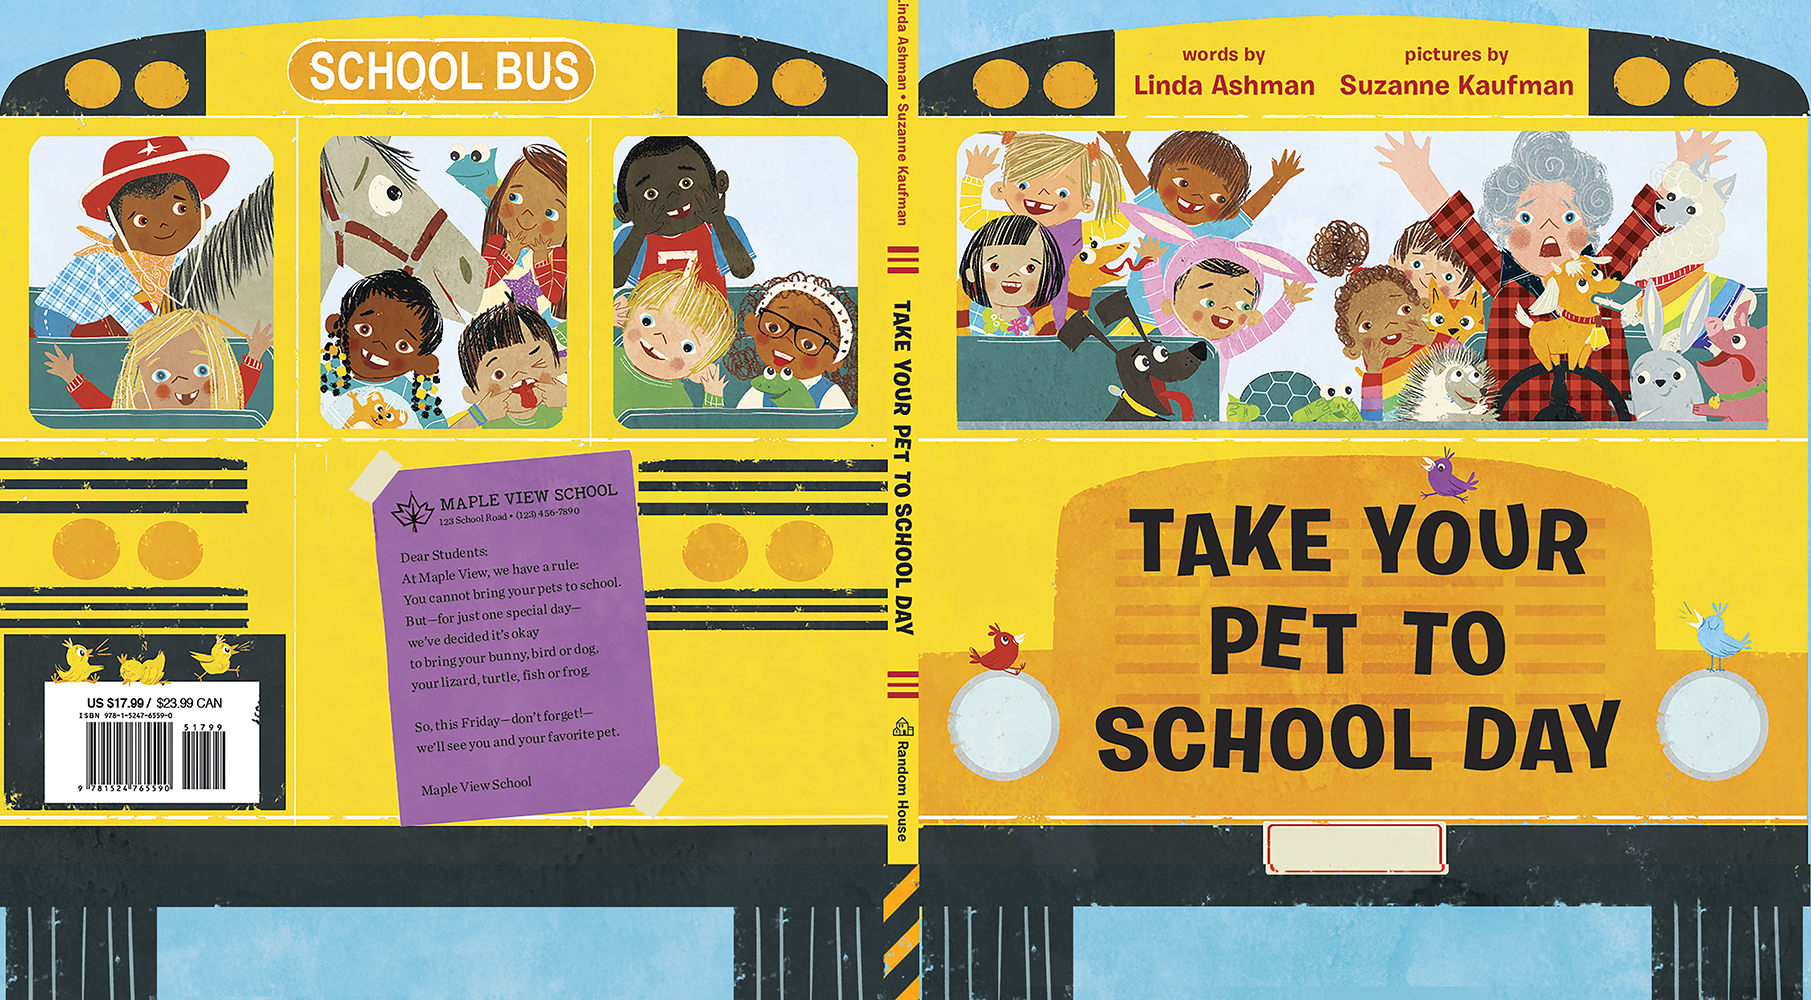 00_Pets_Cover_copyright_suzannekaufman.jpg